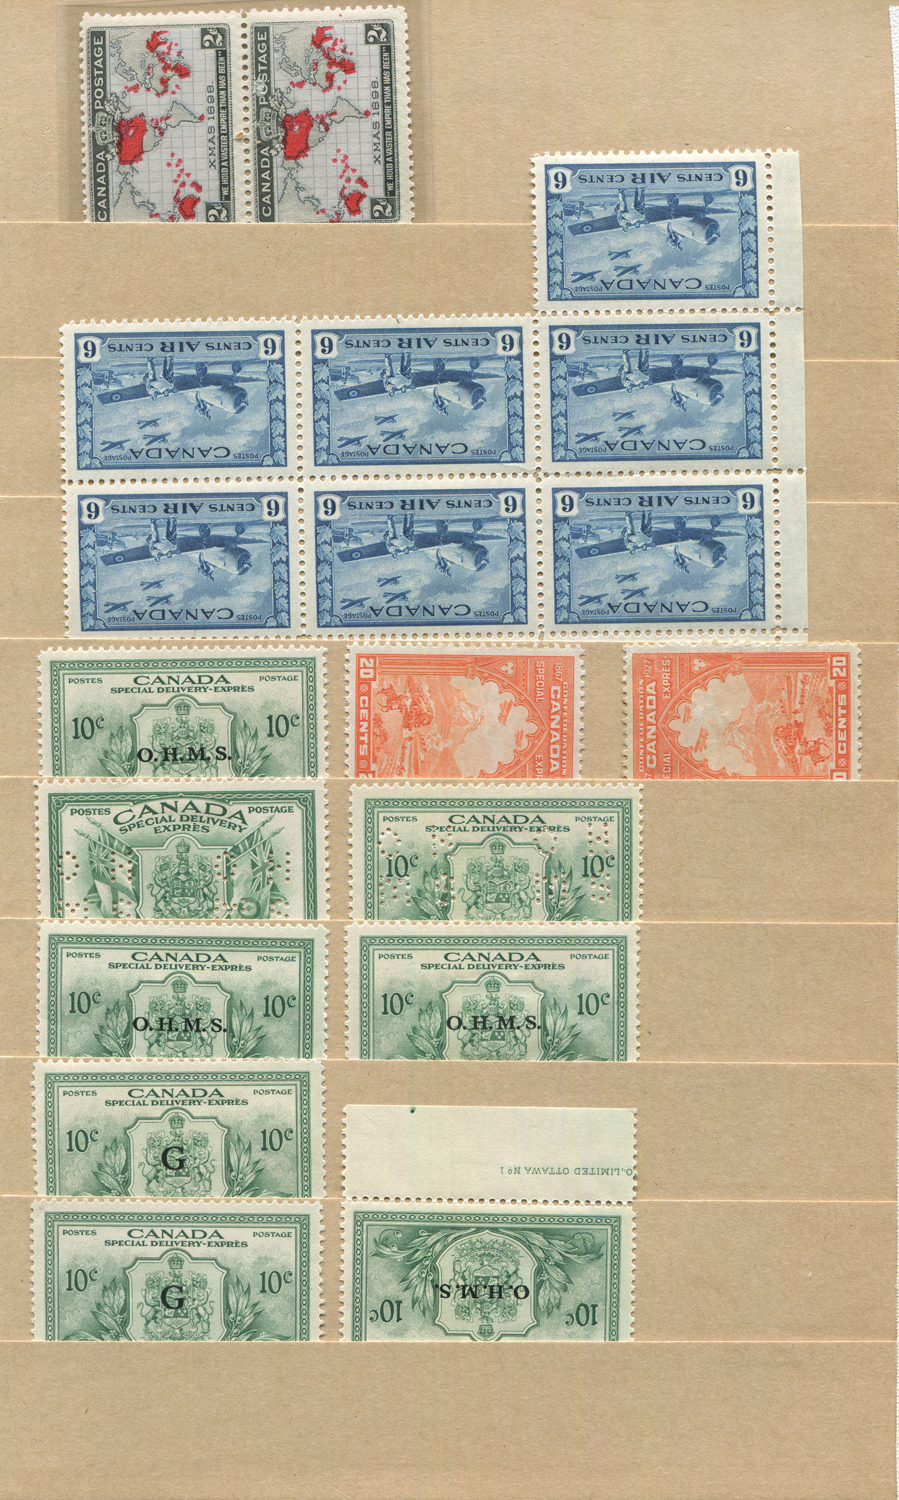 Lot 3025 - A stock album of mint Canada stamps, including 1897 Jubilee ½c to 15c, often several of each, George